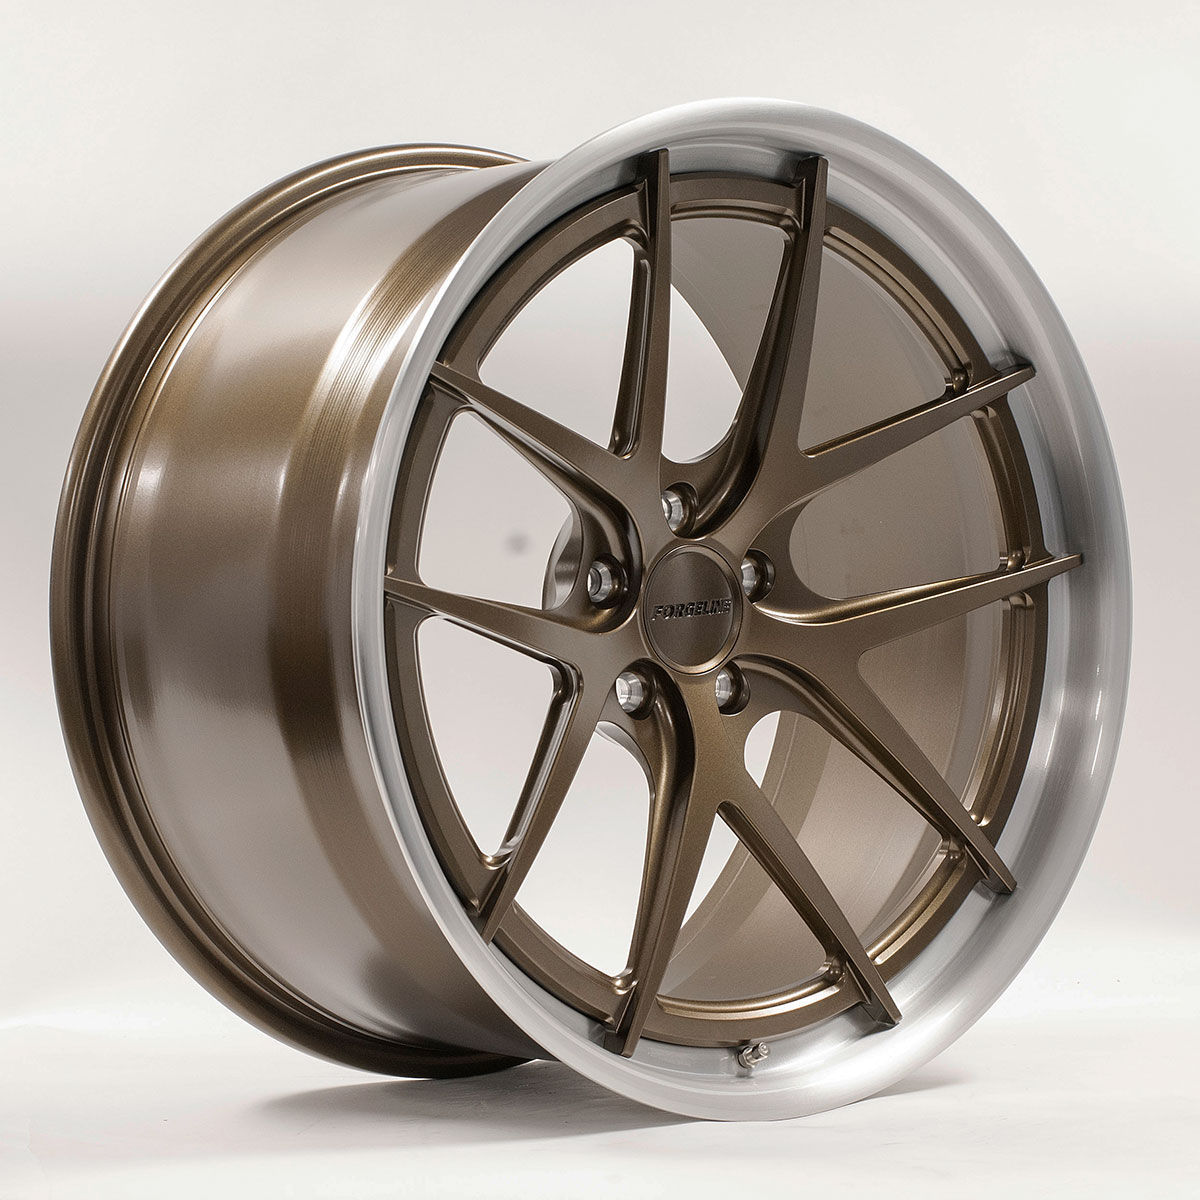 | Forgeline VX3C-SL Stepped Lip Concave Wheel in Satin Bronze with Brushed Outer